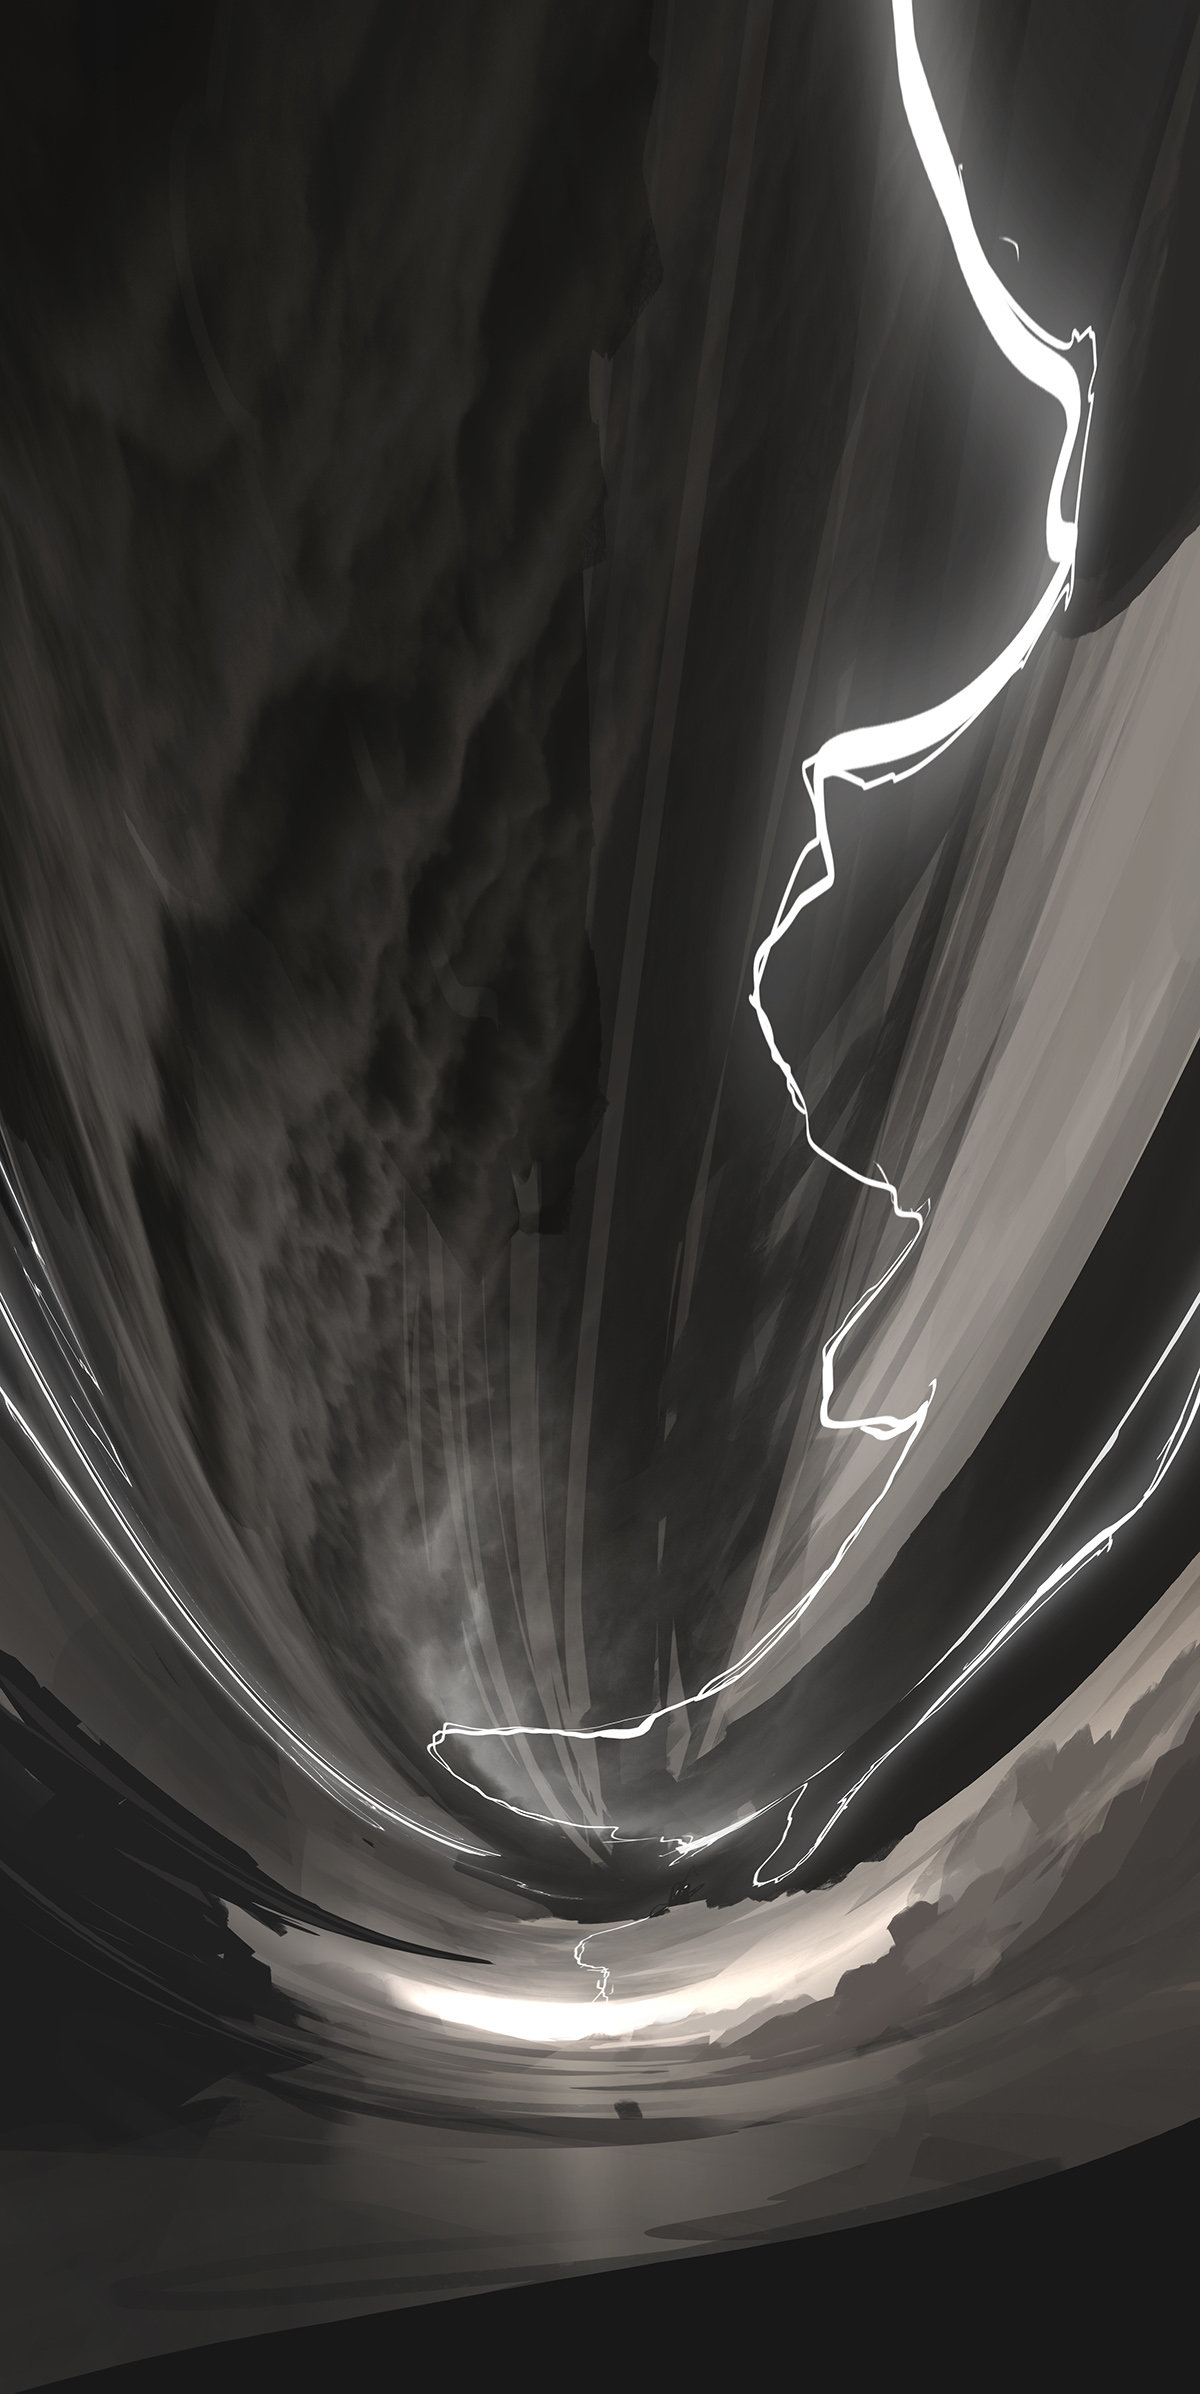 Bastien grivet riders in the stormwip